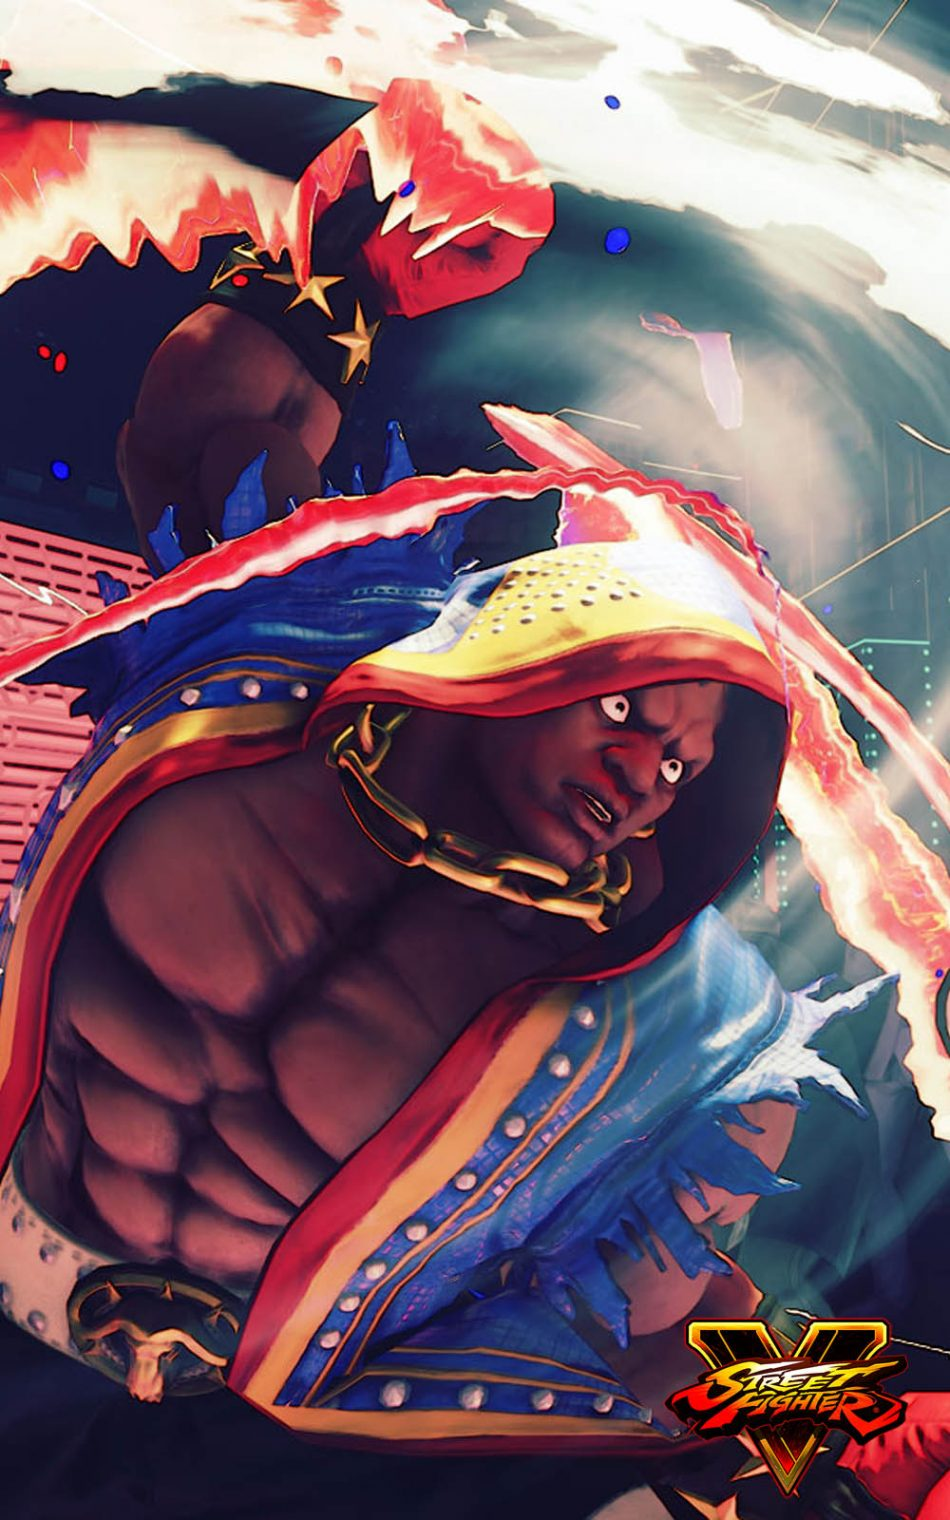 download balrog street fighter 5 hero free pure 4k ultra hd mobile